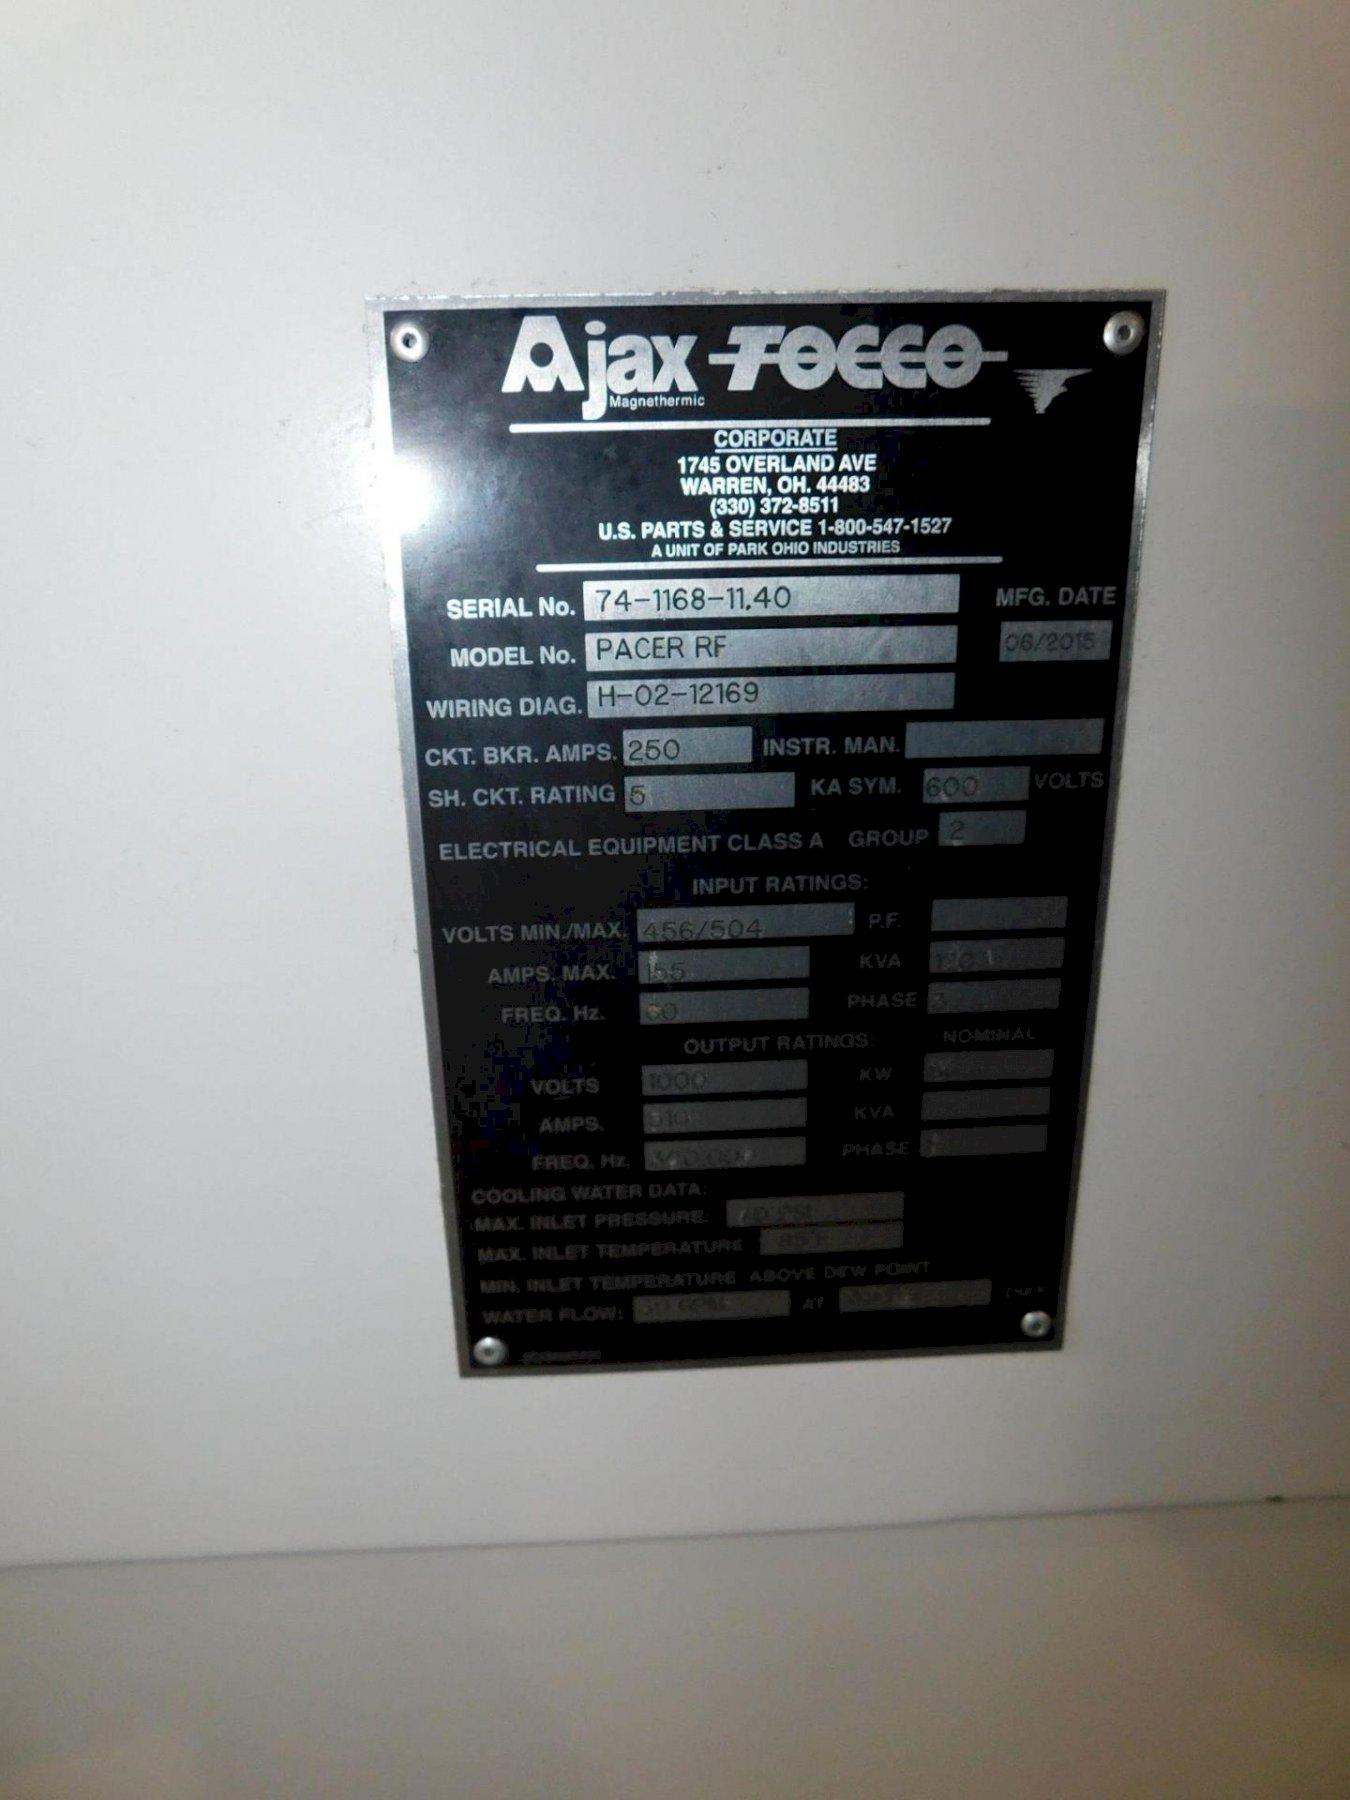 120 KVA AJAX TOCCO MODEL #PACER RF INDUCTION HEATER & SCANNER. STOCK # 0636021